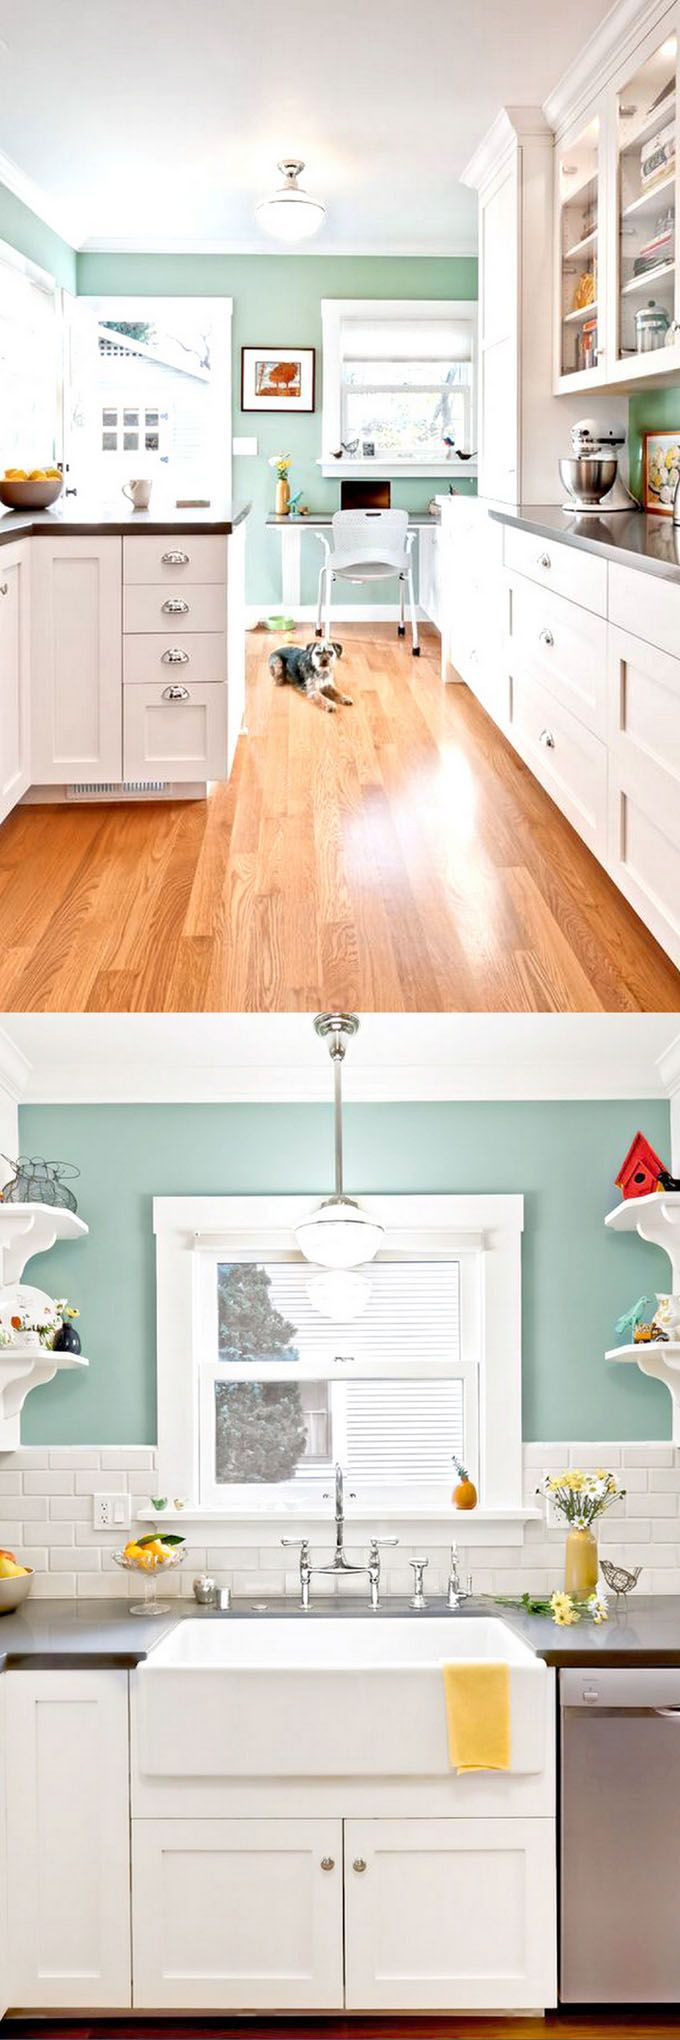 best 10 green kitchen paint diy ideas on pinterest green 25 gorgeous paint colors for kitchen cabinets and beyond